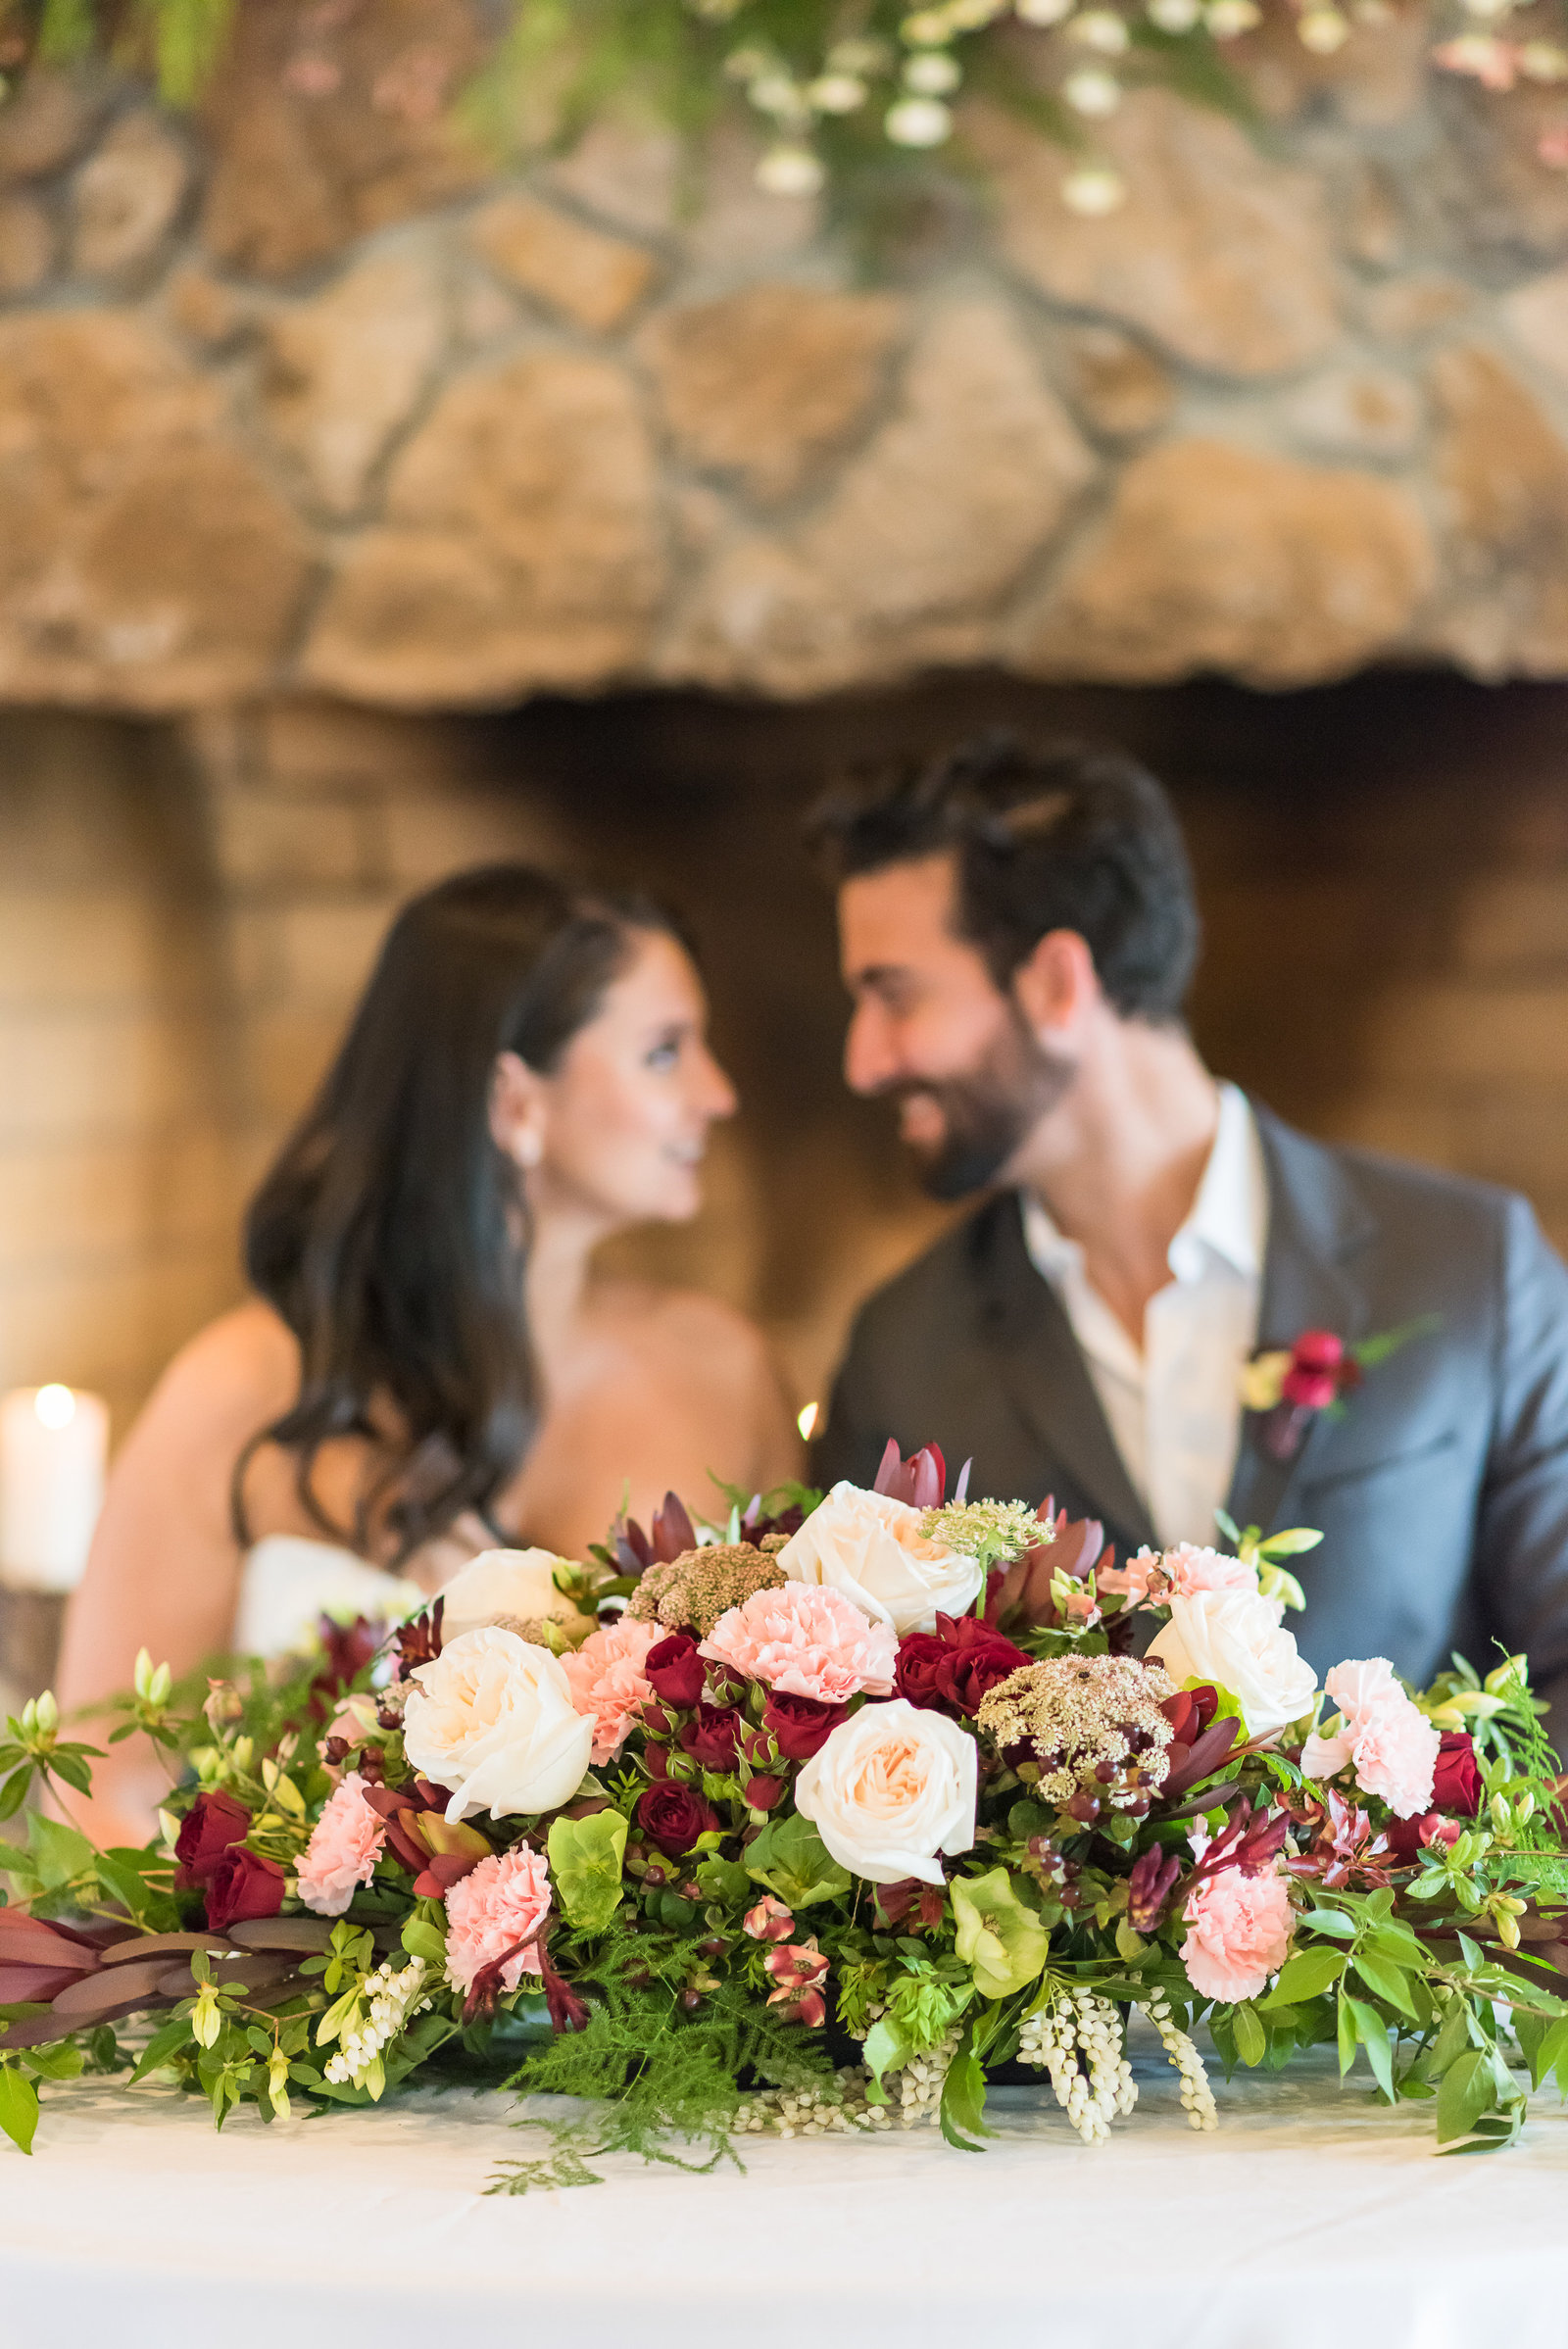 Bride and groom behind a burgundy and blush sweetheart table arrangement